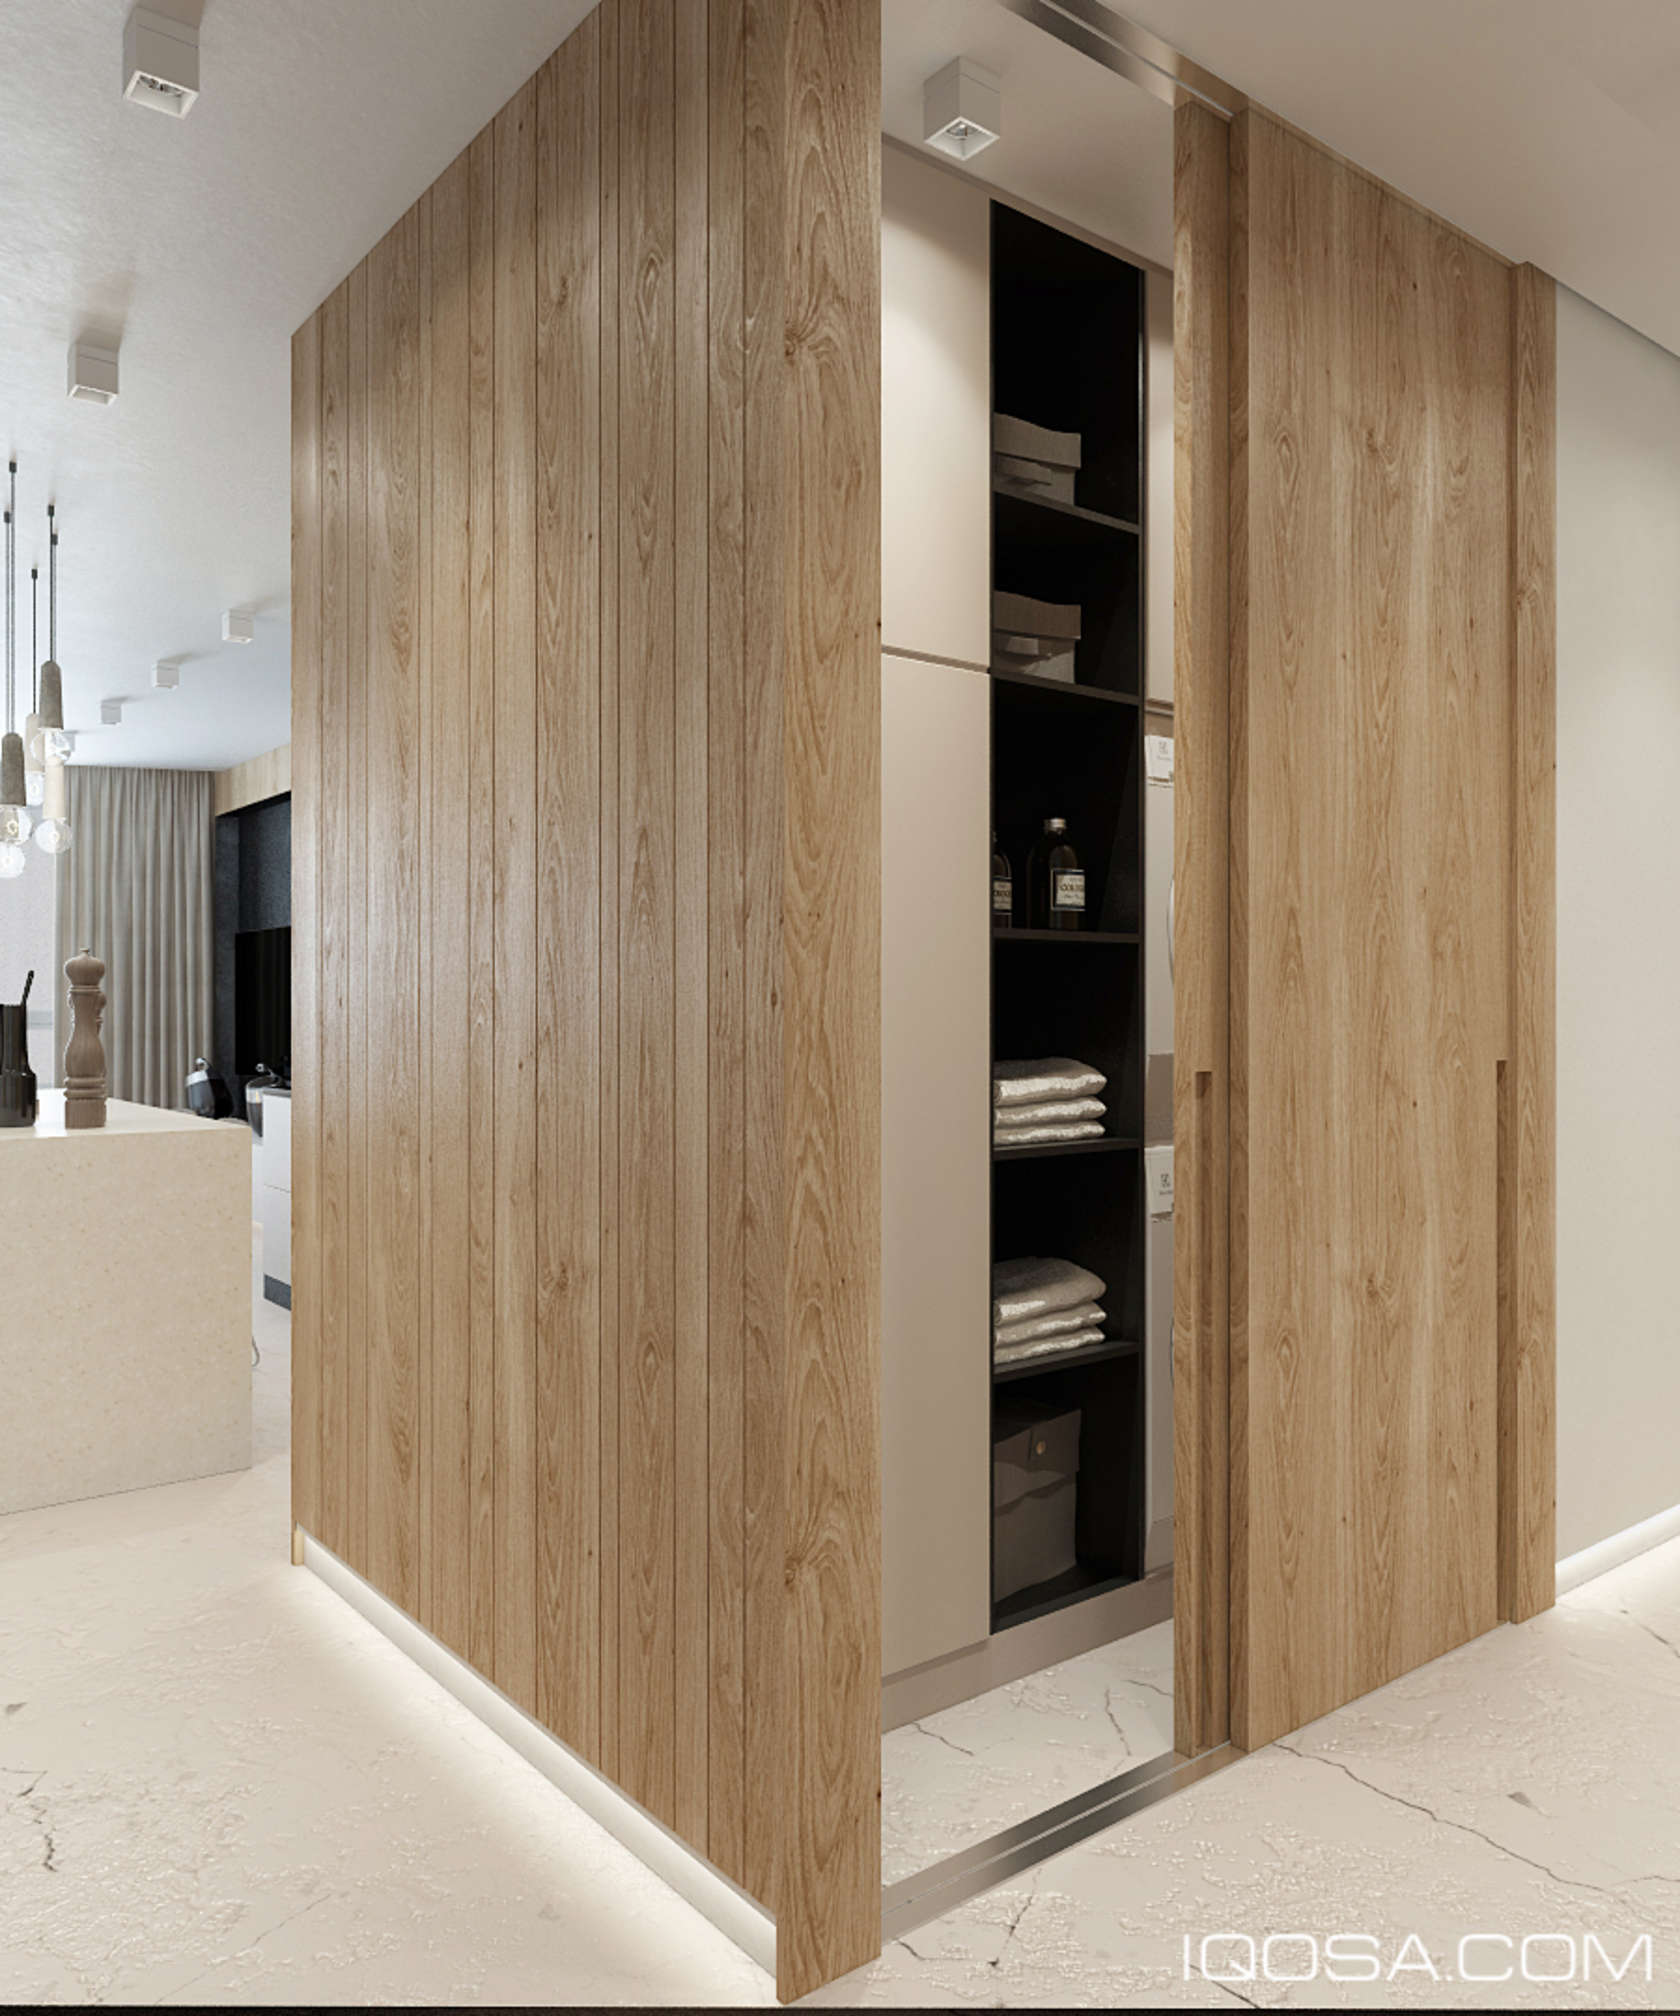 Clever Closet Design - An approachable take on luxury apartment design